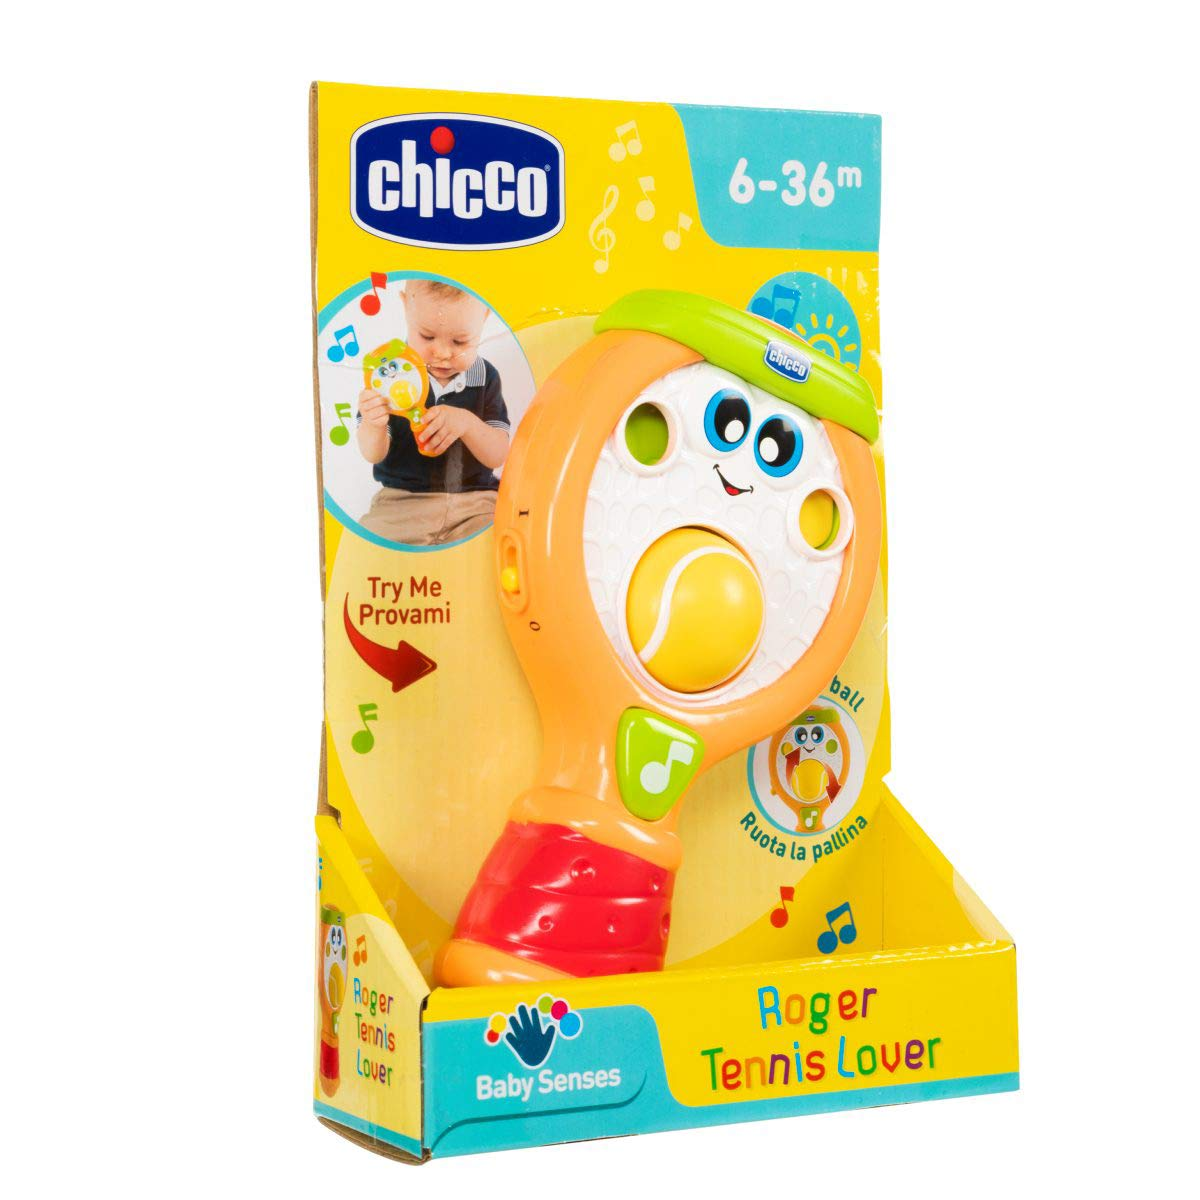 Chicco 00009705000000 Roger Passion Tennis